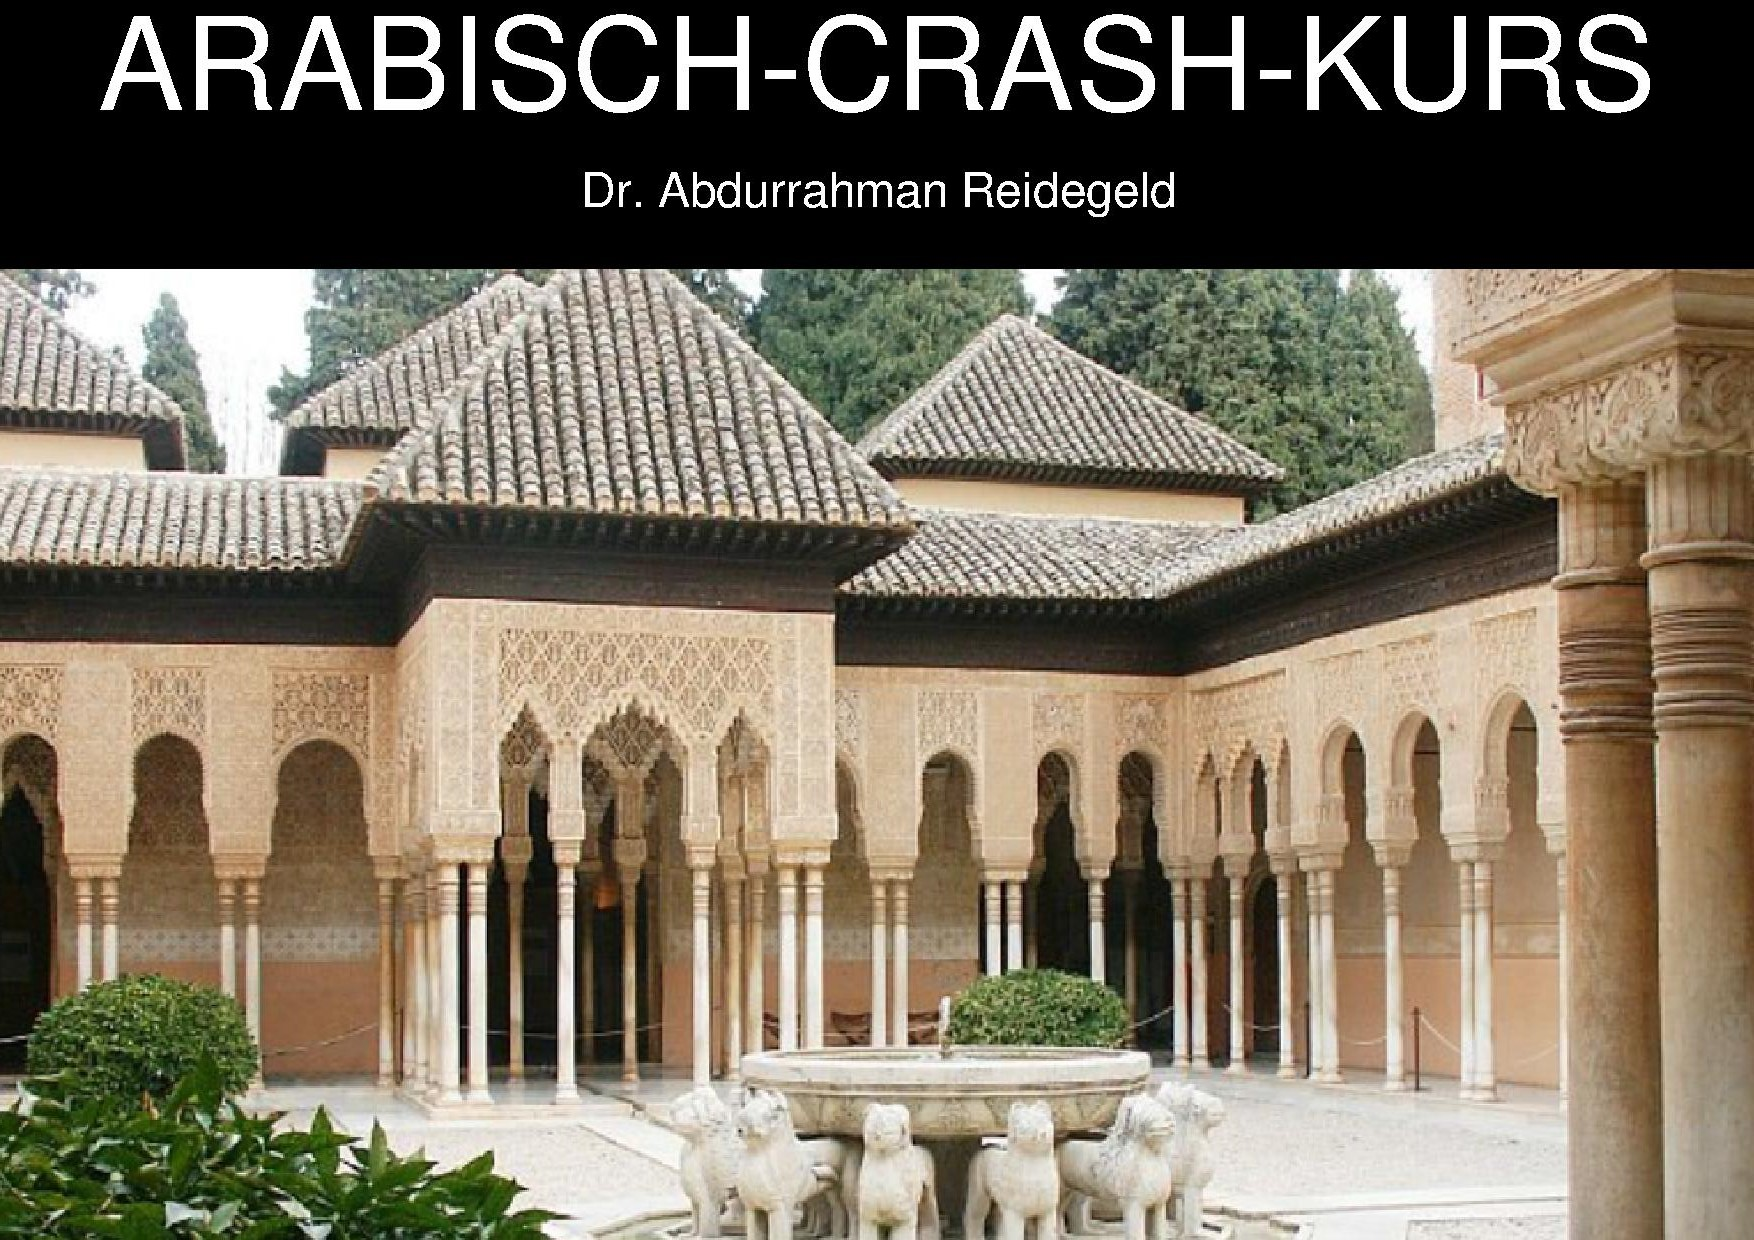 Arabisch-Crash-Kurs [April 2014] (Dr. Reidegeld)